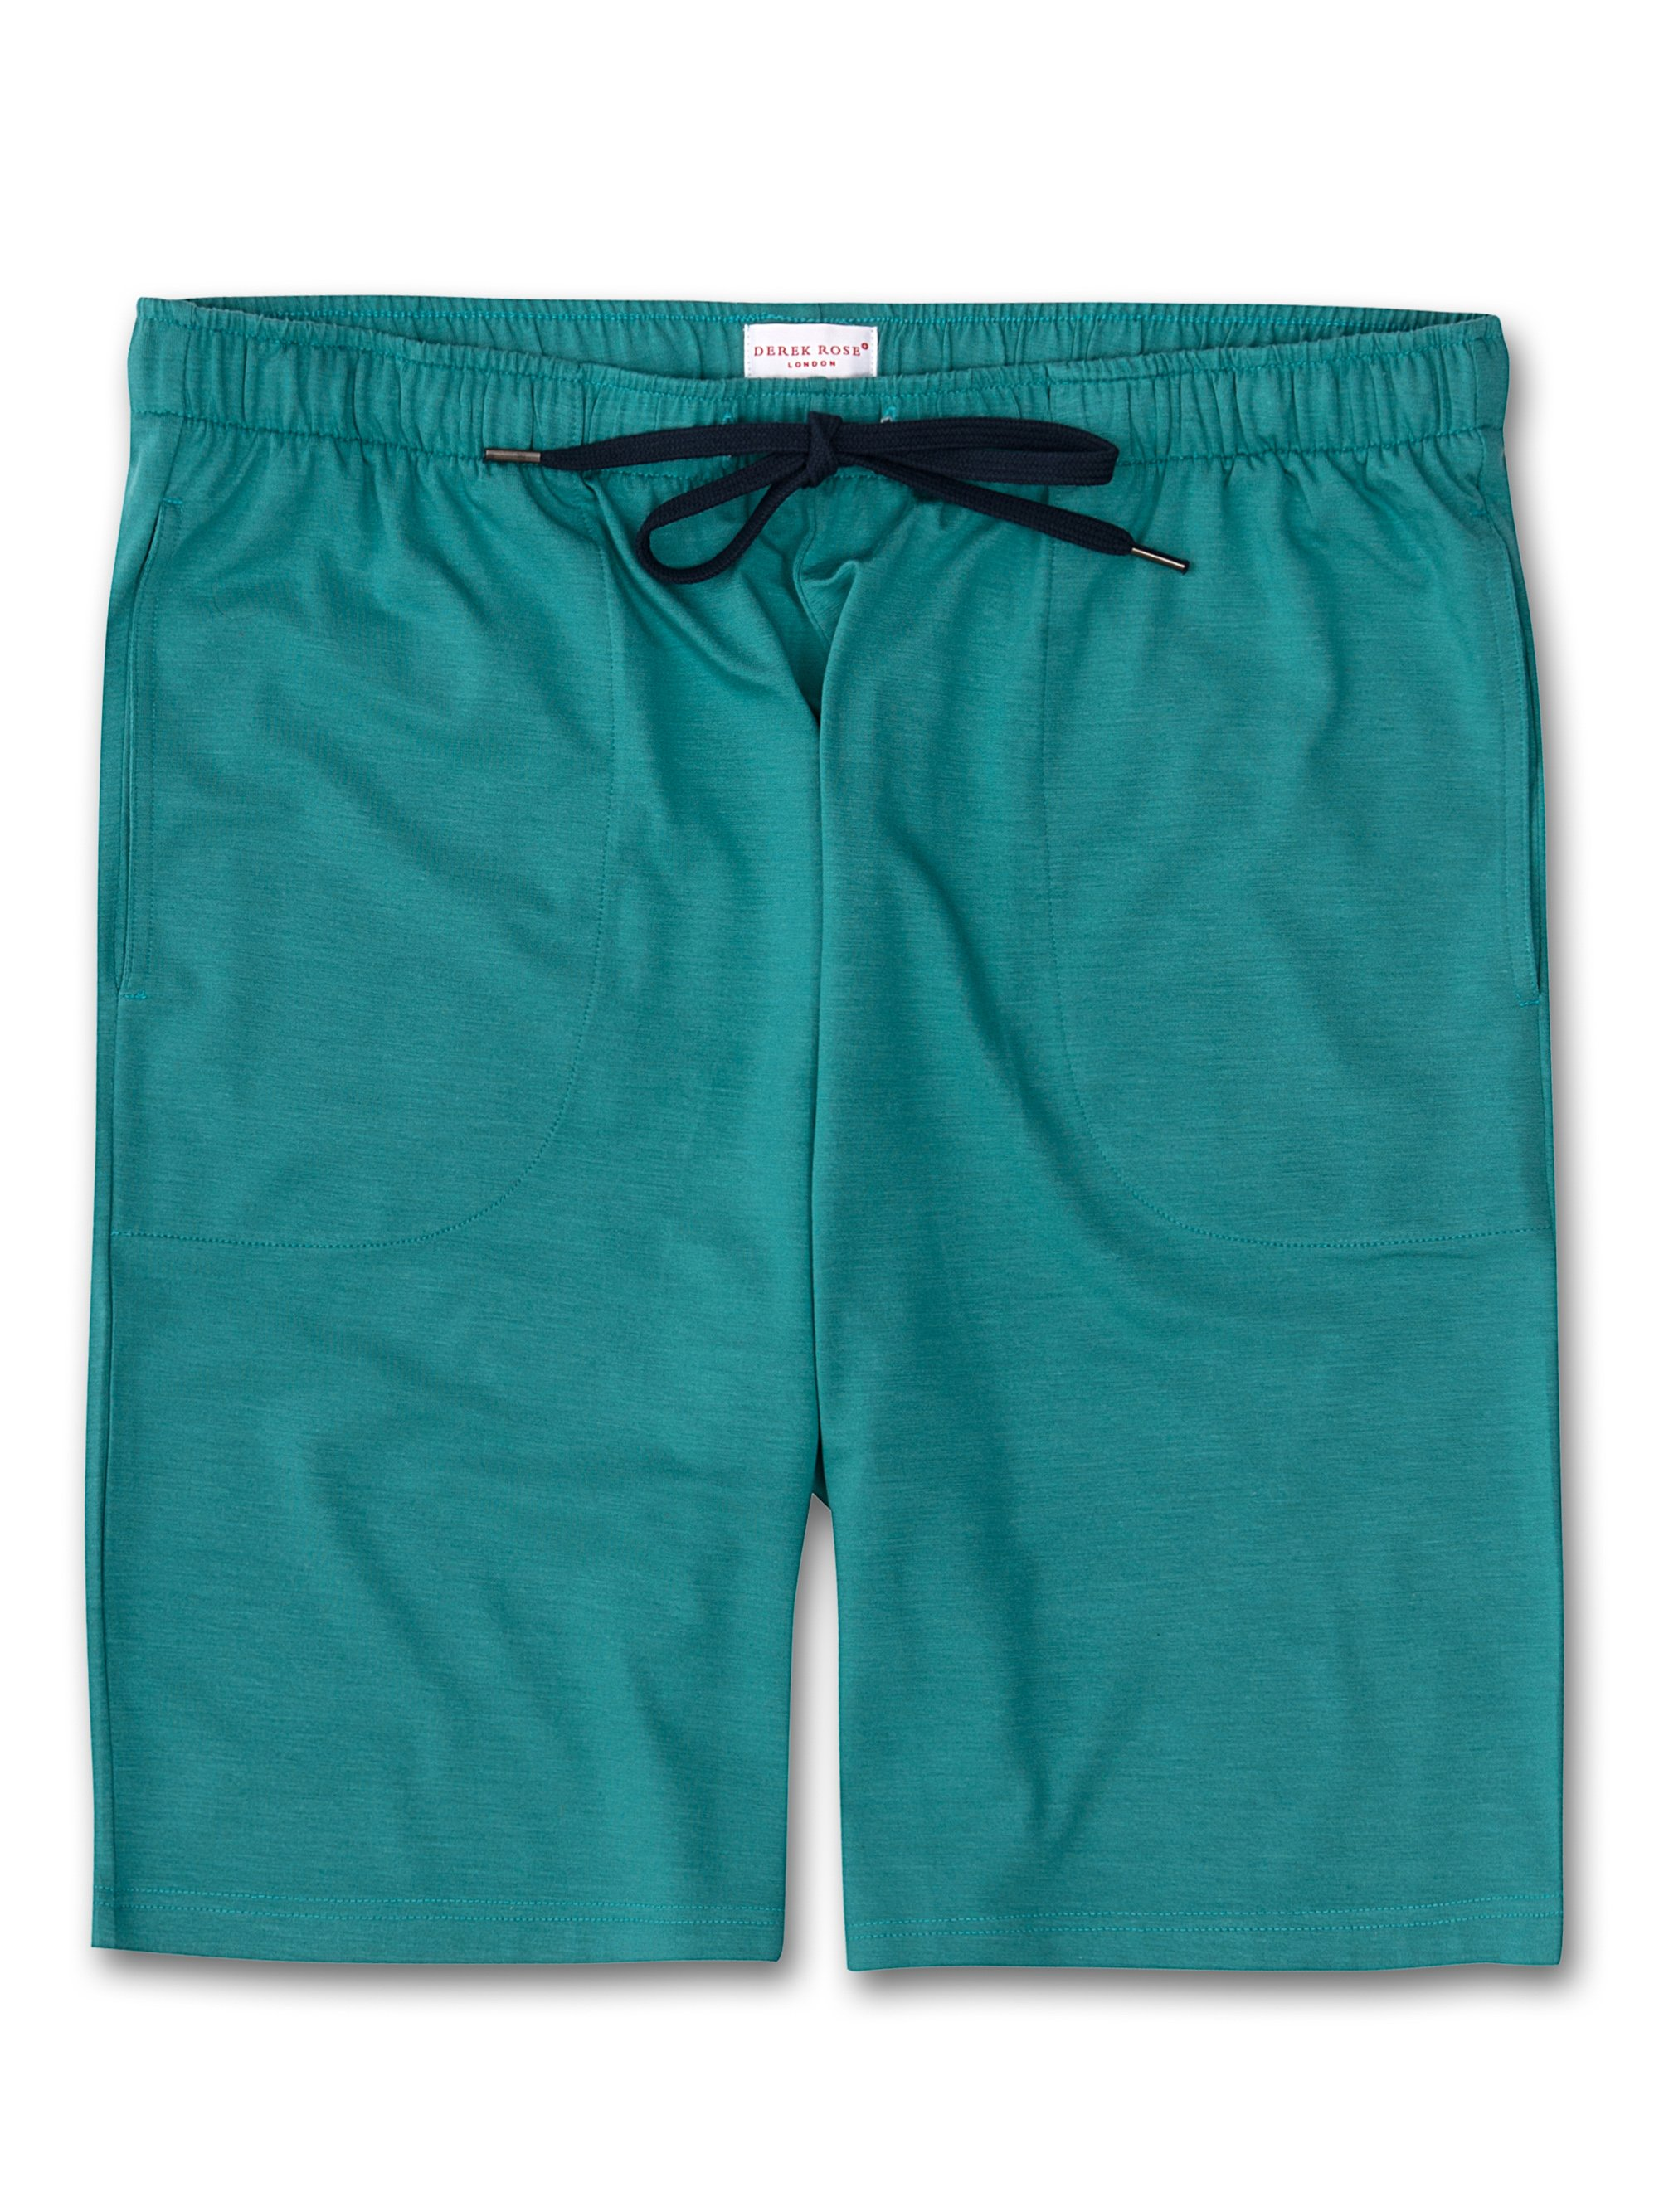 Men's Jersey Shorts Basel Micro Modal Stretch Turquoise